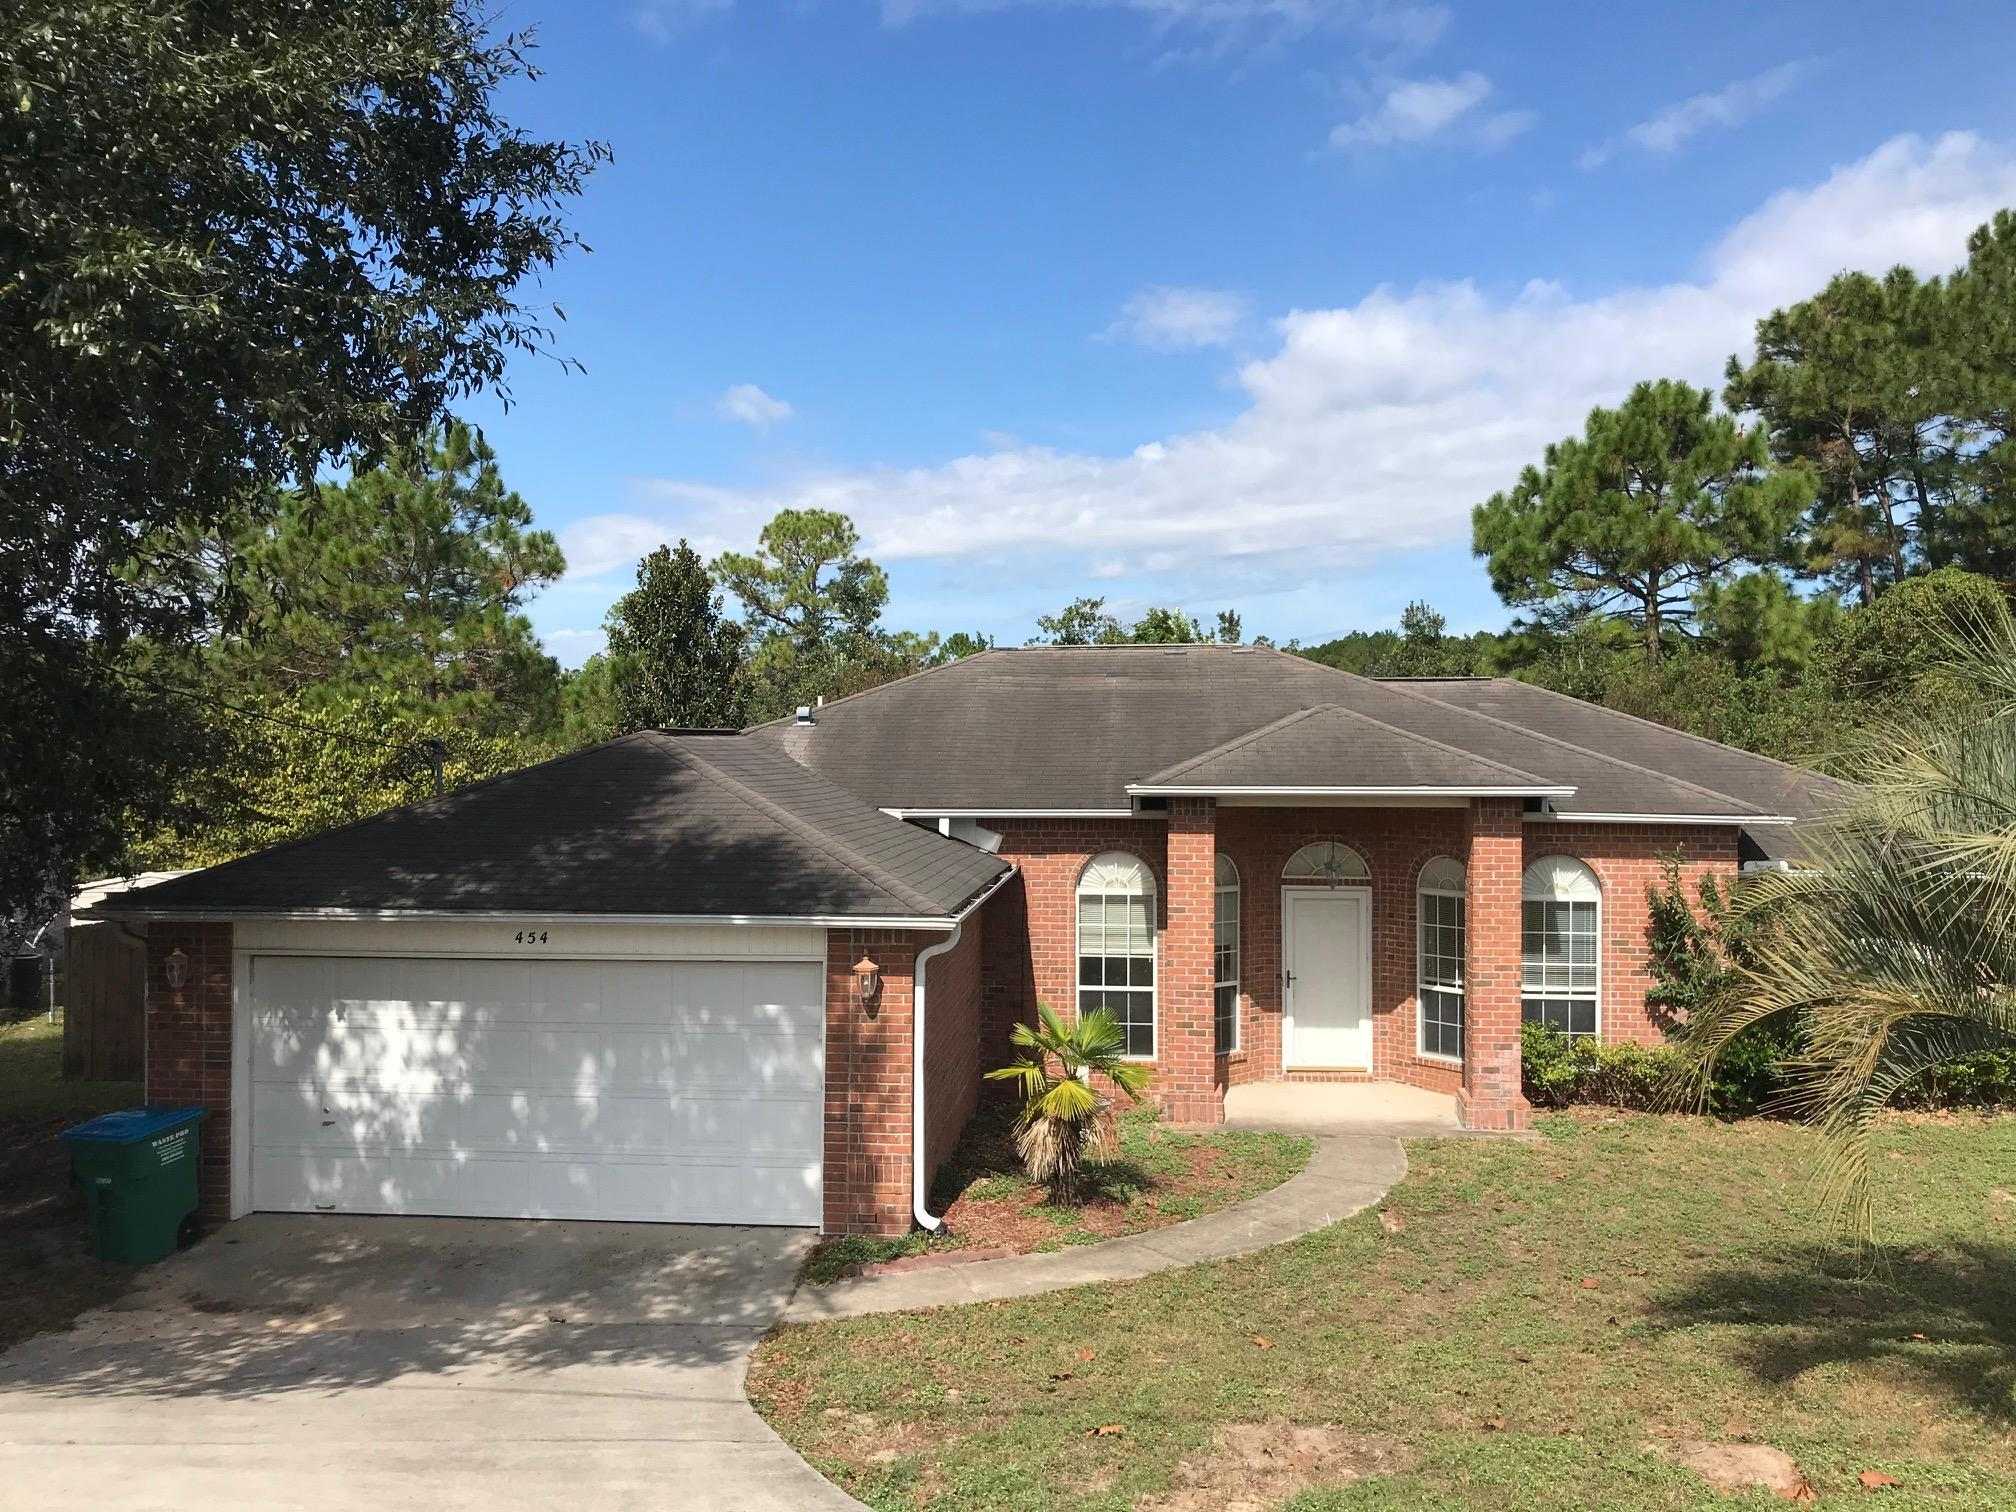 Photo of home for sale at 454 Jillian, Crestview FL